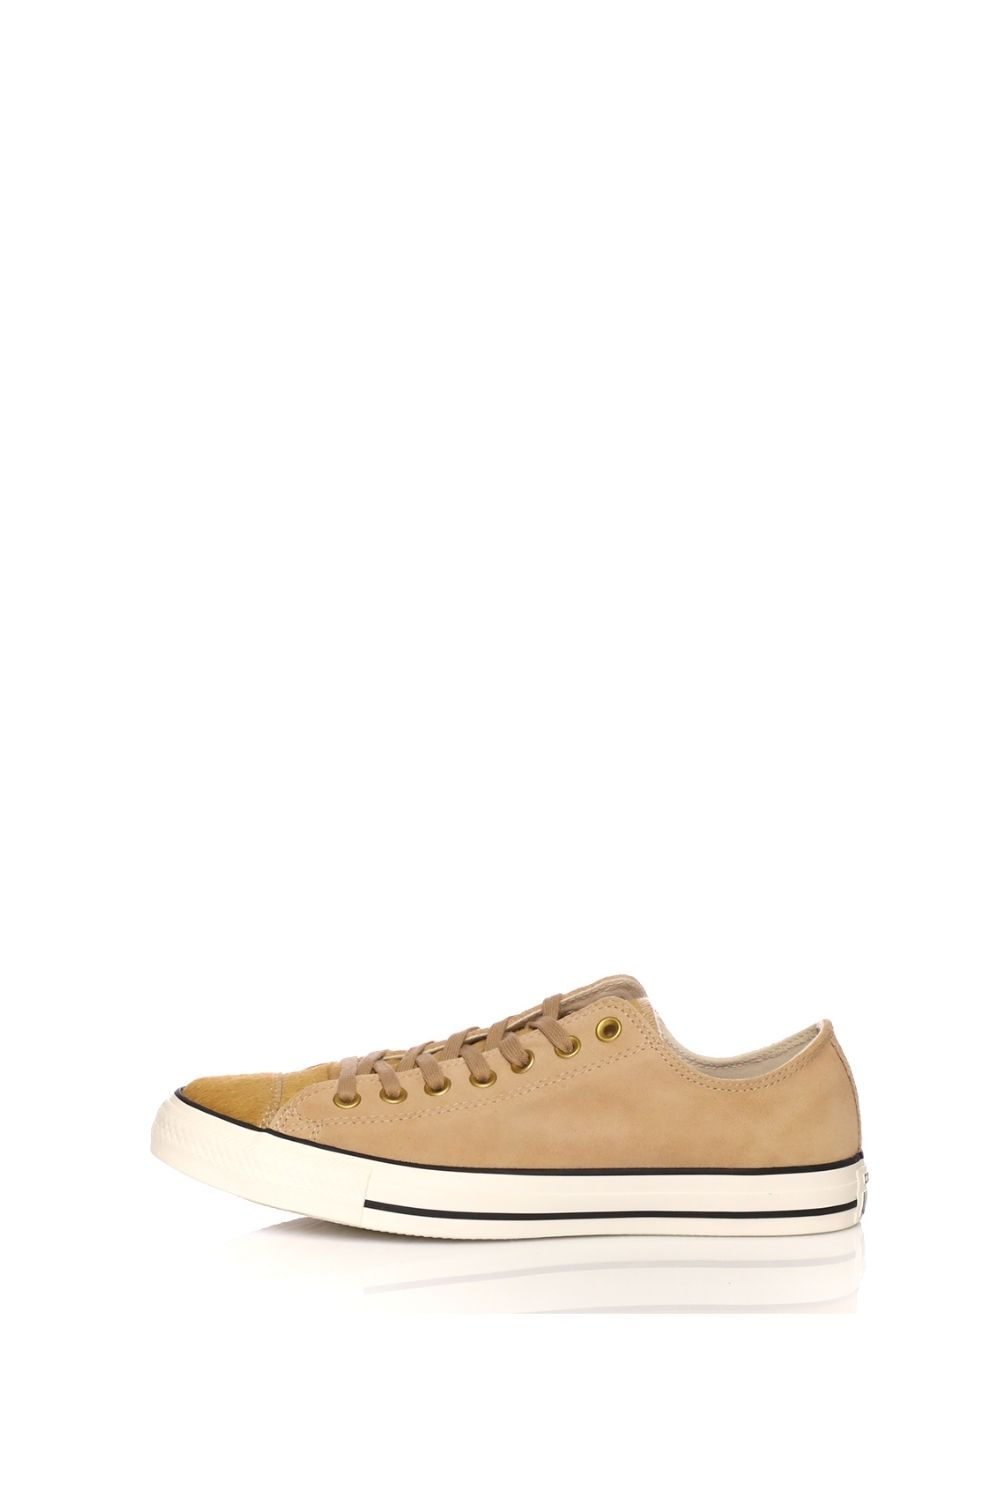 CONVERSE – Unisex sneakers CONVERSE Chuck Taylor All Star Ox καφέ